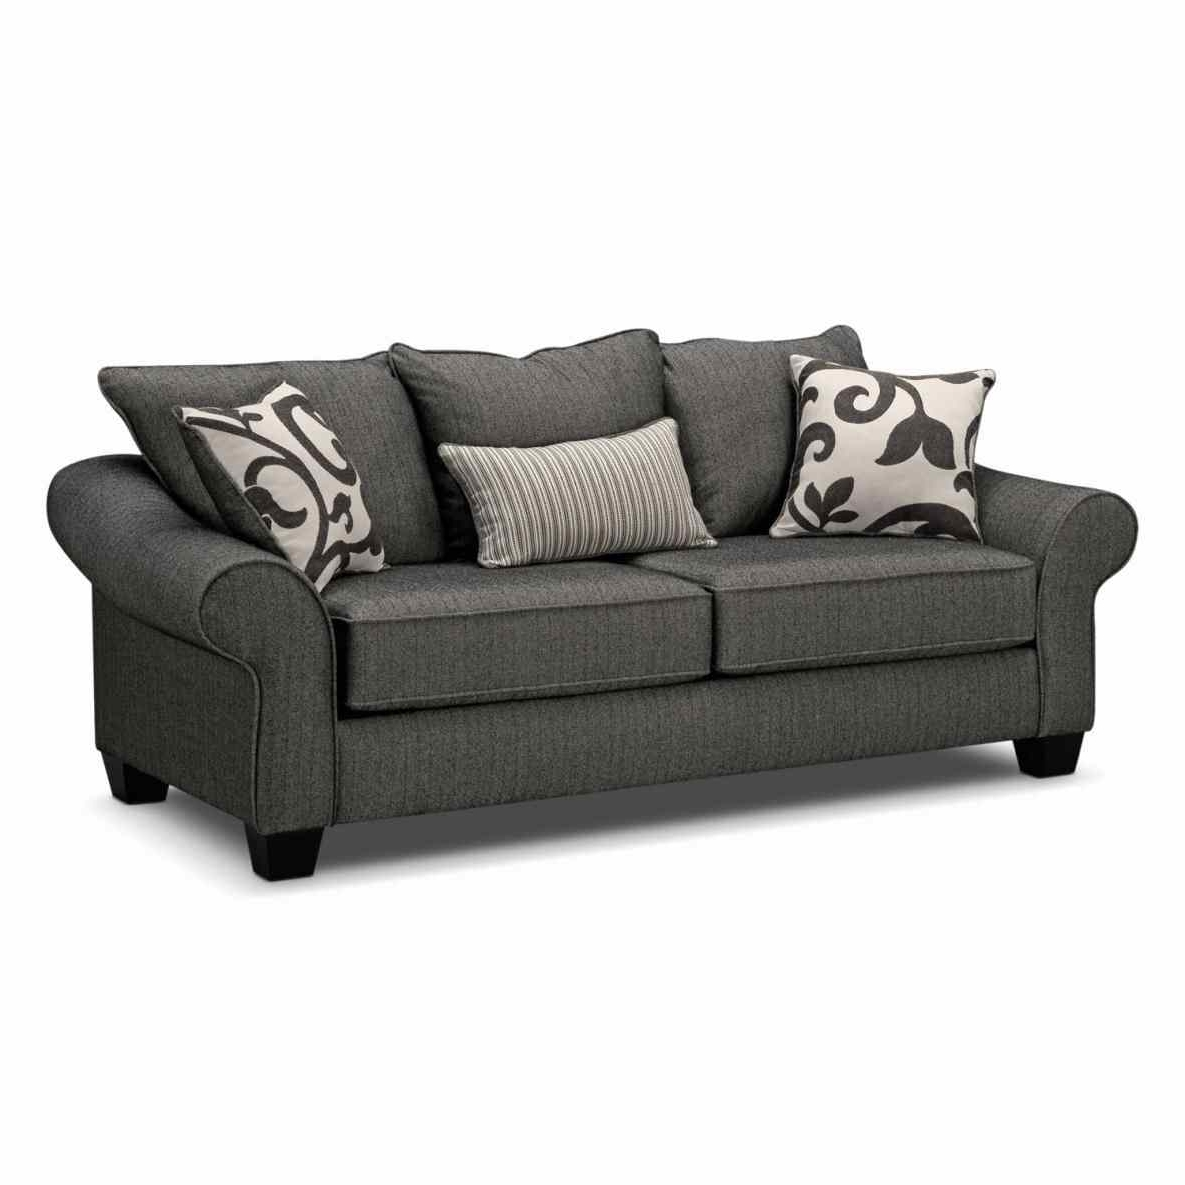 Round Sofas Intended For Popular Couch : Bed Bedua Sofas Semi Circular Half Curved Wedge Semi Small (View 12 of 20)